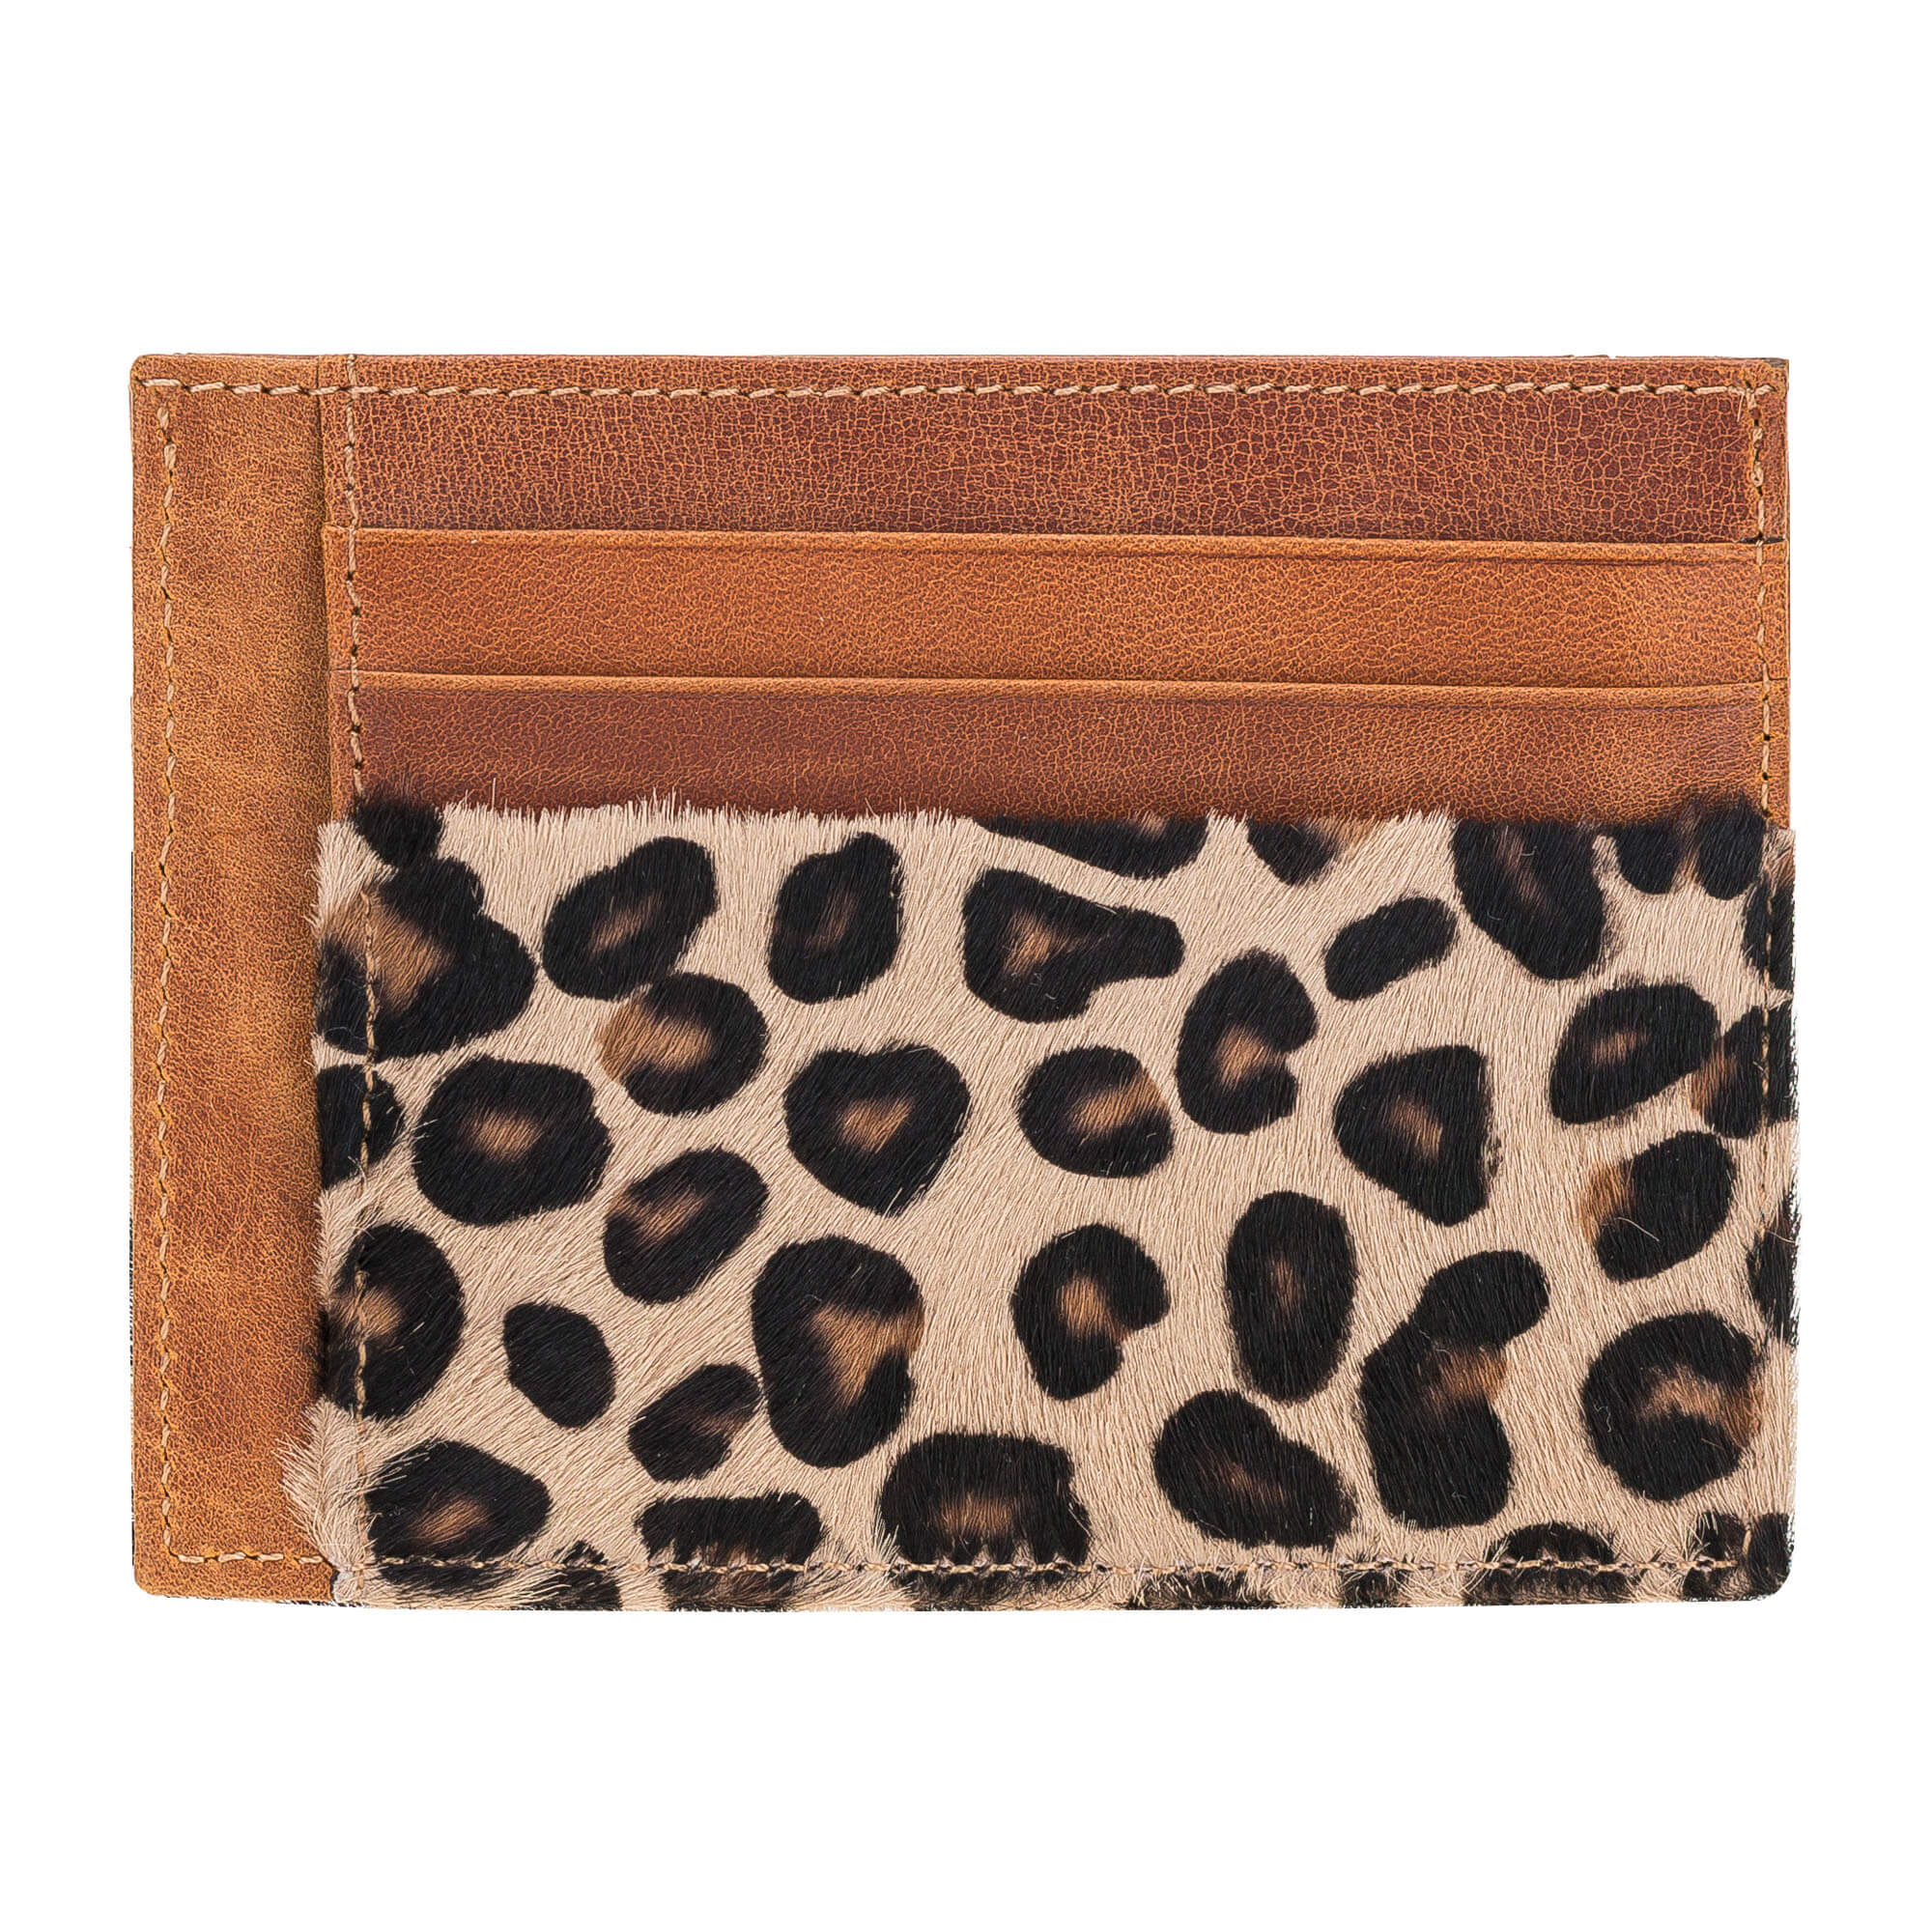 Genoa RFID Blocking Leather Wallet Card Holder